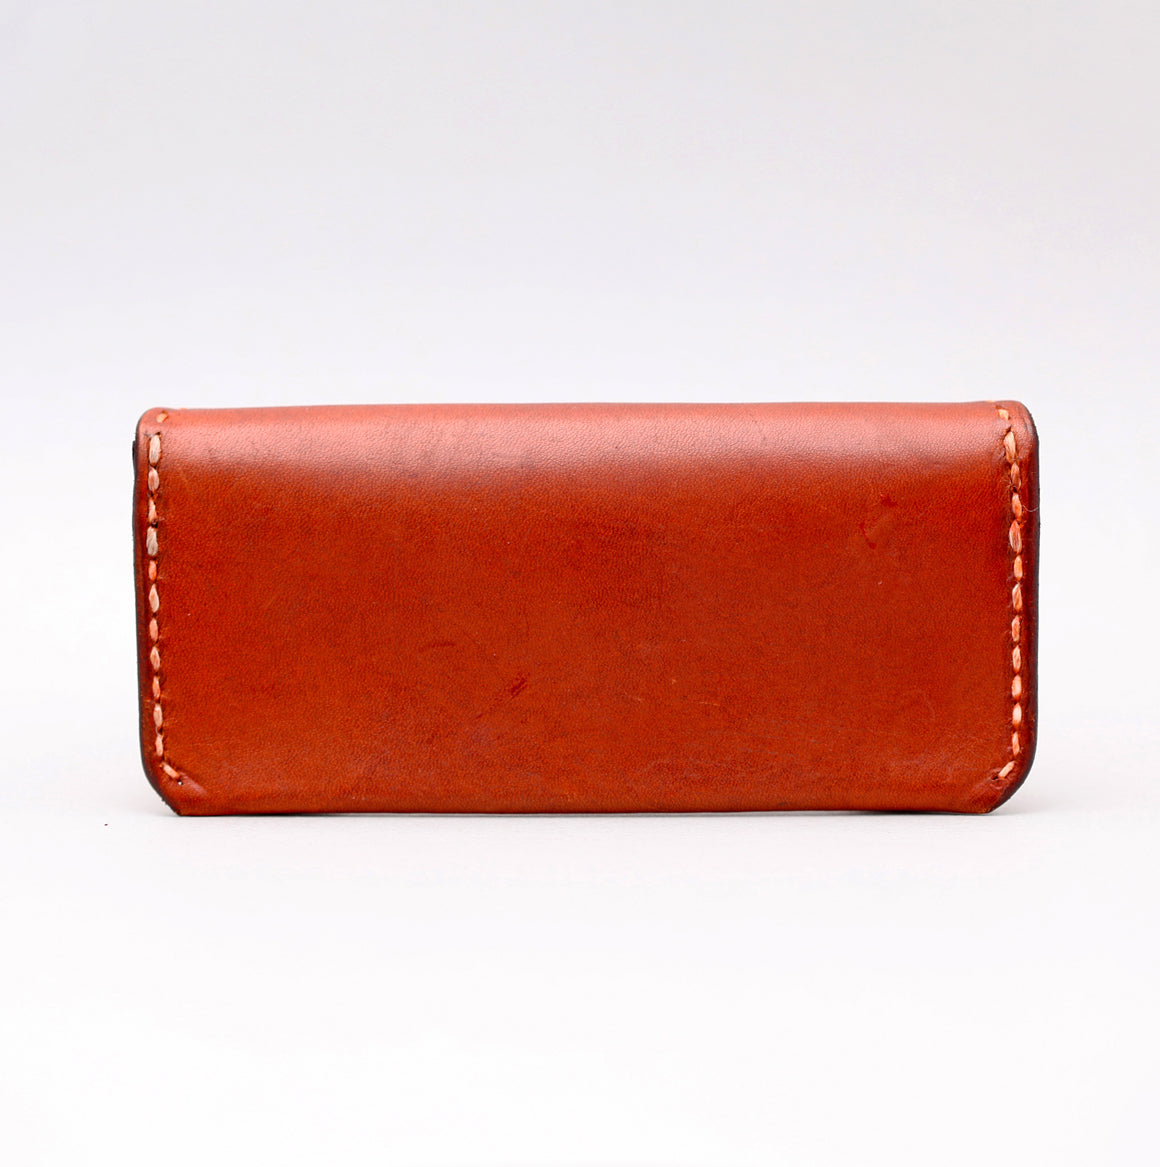 RECTANGULAR SUNGLASSES CASE IN LIGHT BROWN LEATHER W TOP STITCH DETAILS